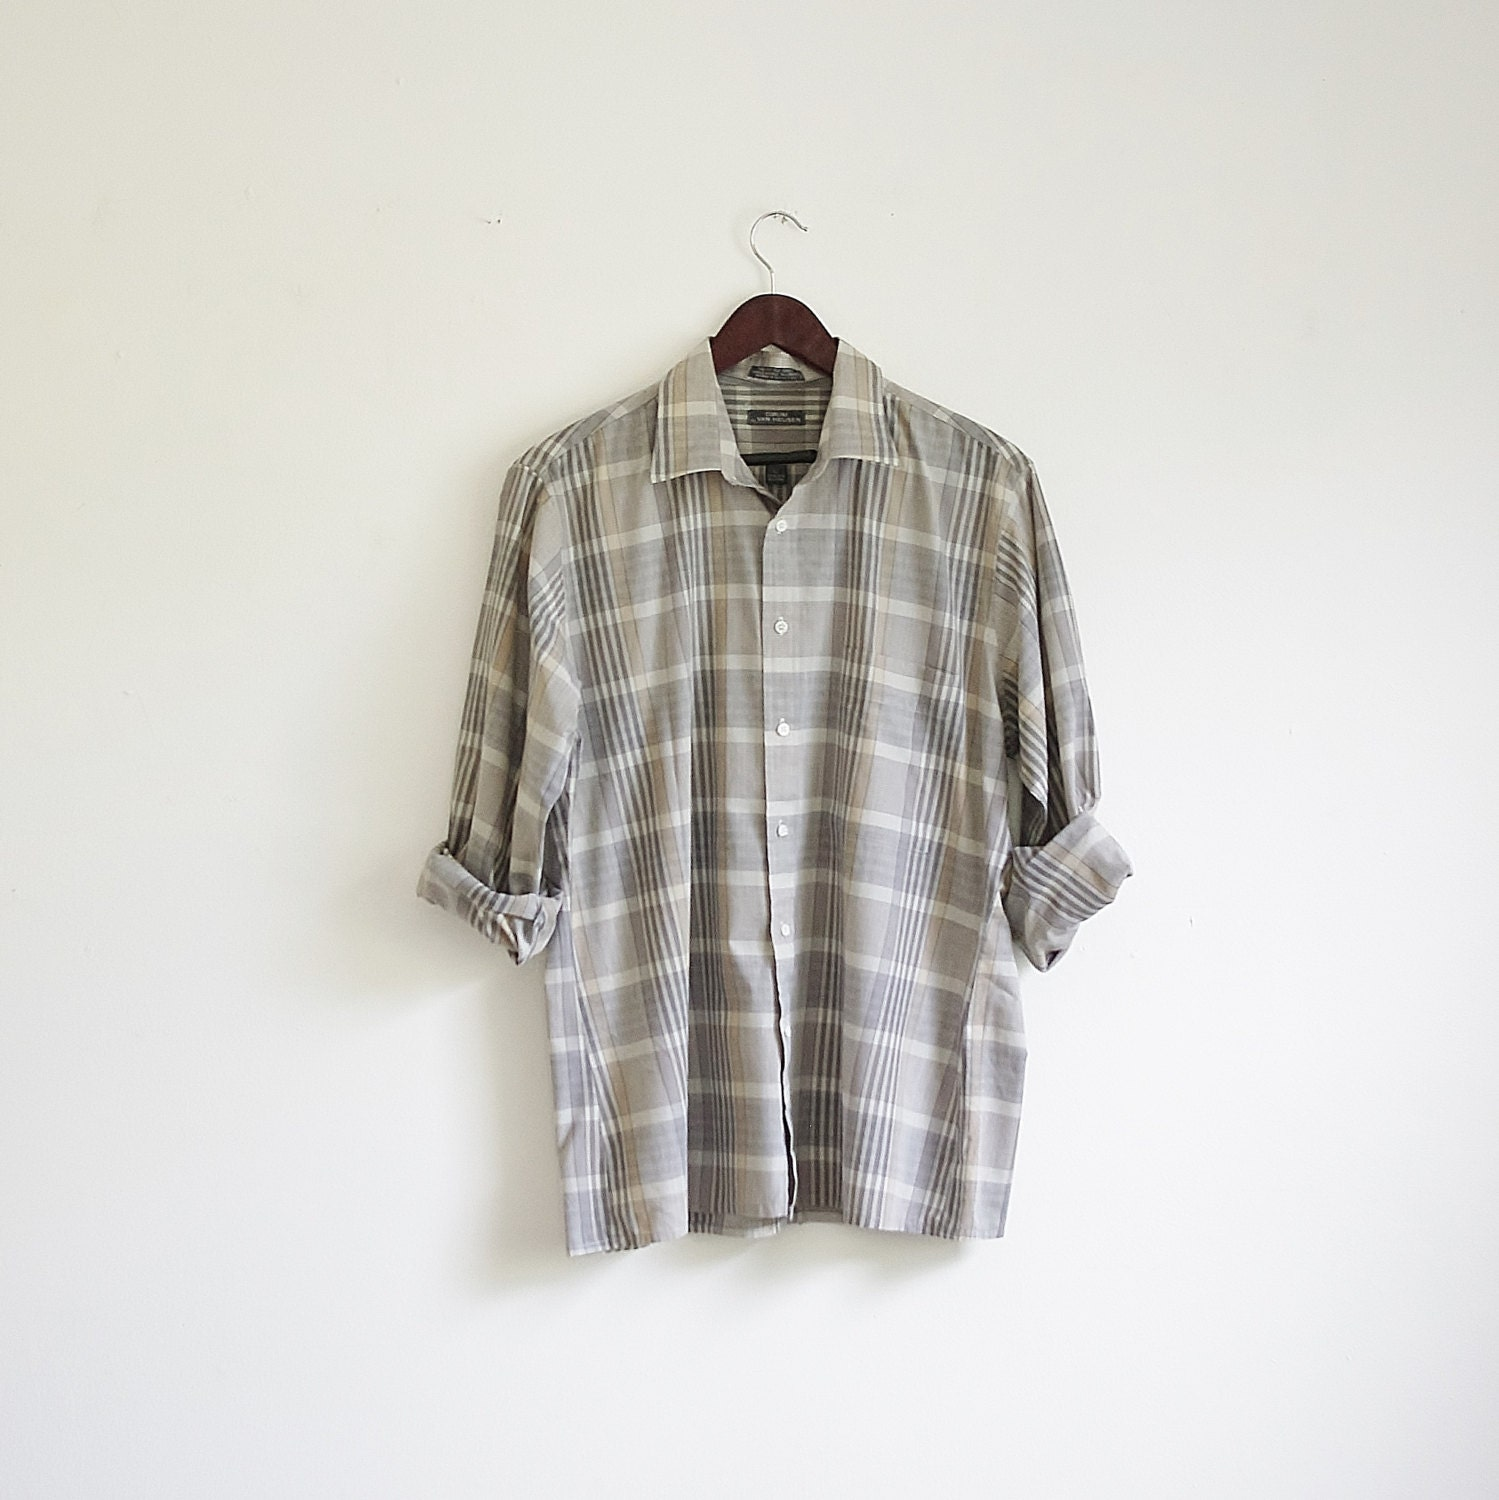 vintage mens button up shirt steel gray plaid by mituvintage